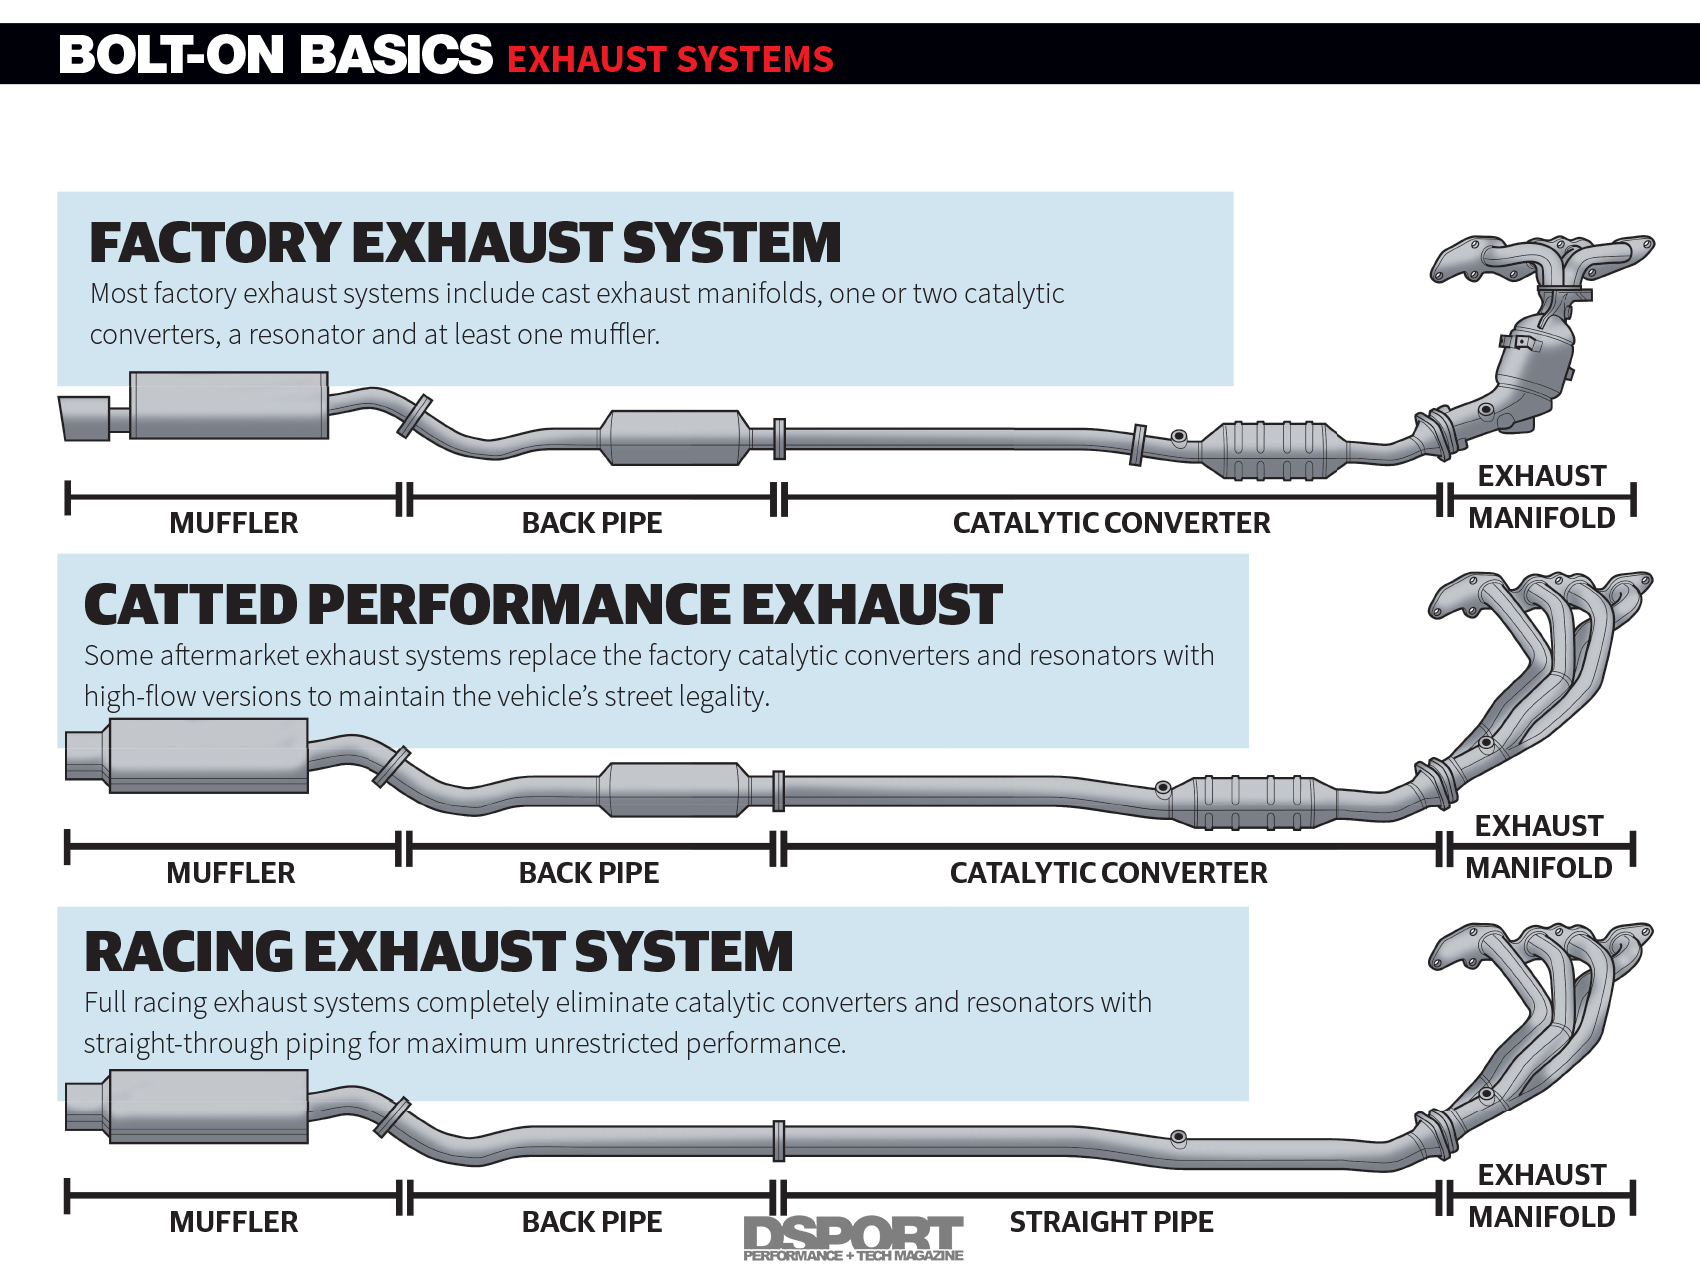 hight resolution of exhaust systems uncorking your engine s potential bolt on basics diagram of the exhaust system components diagram exhaust system